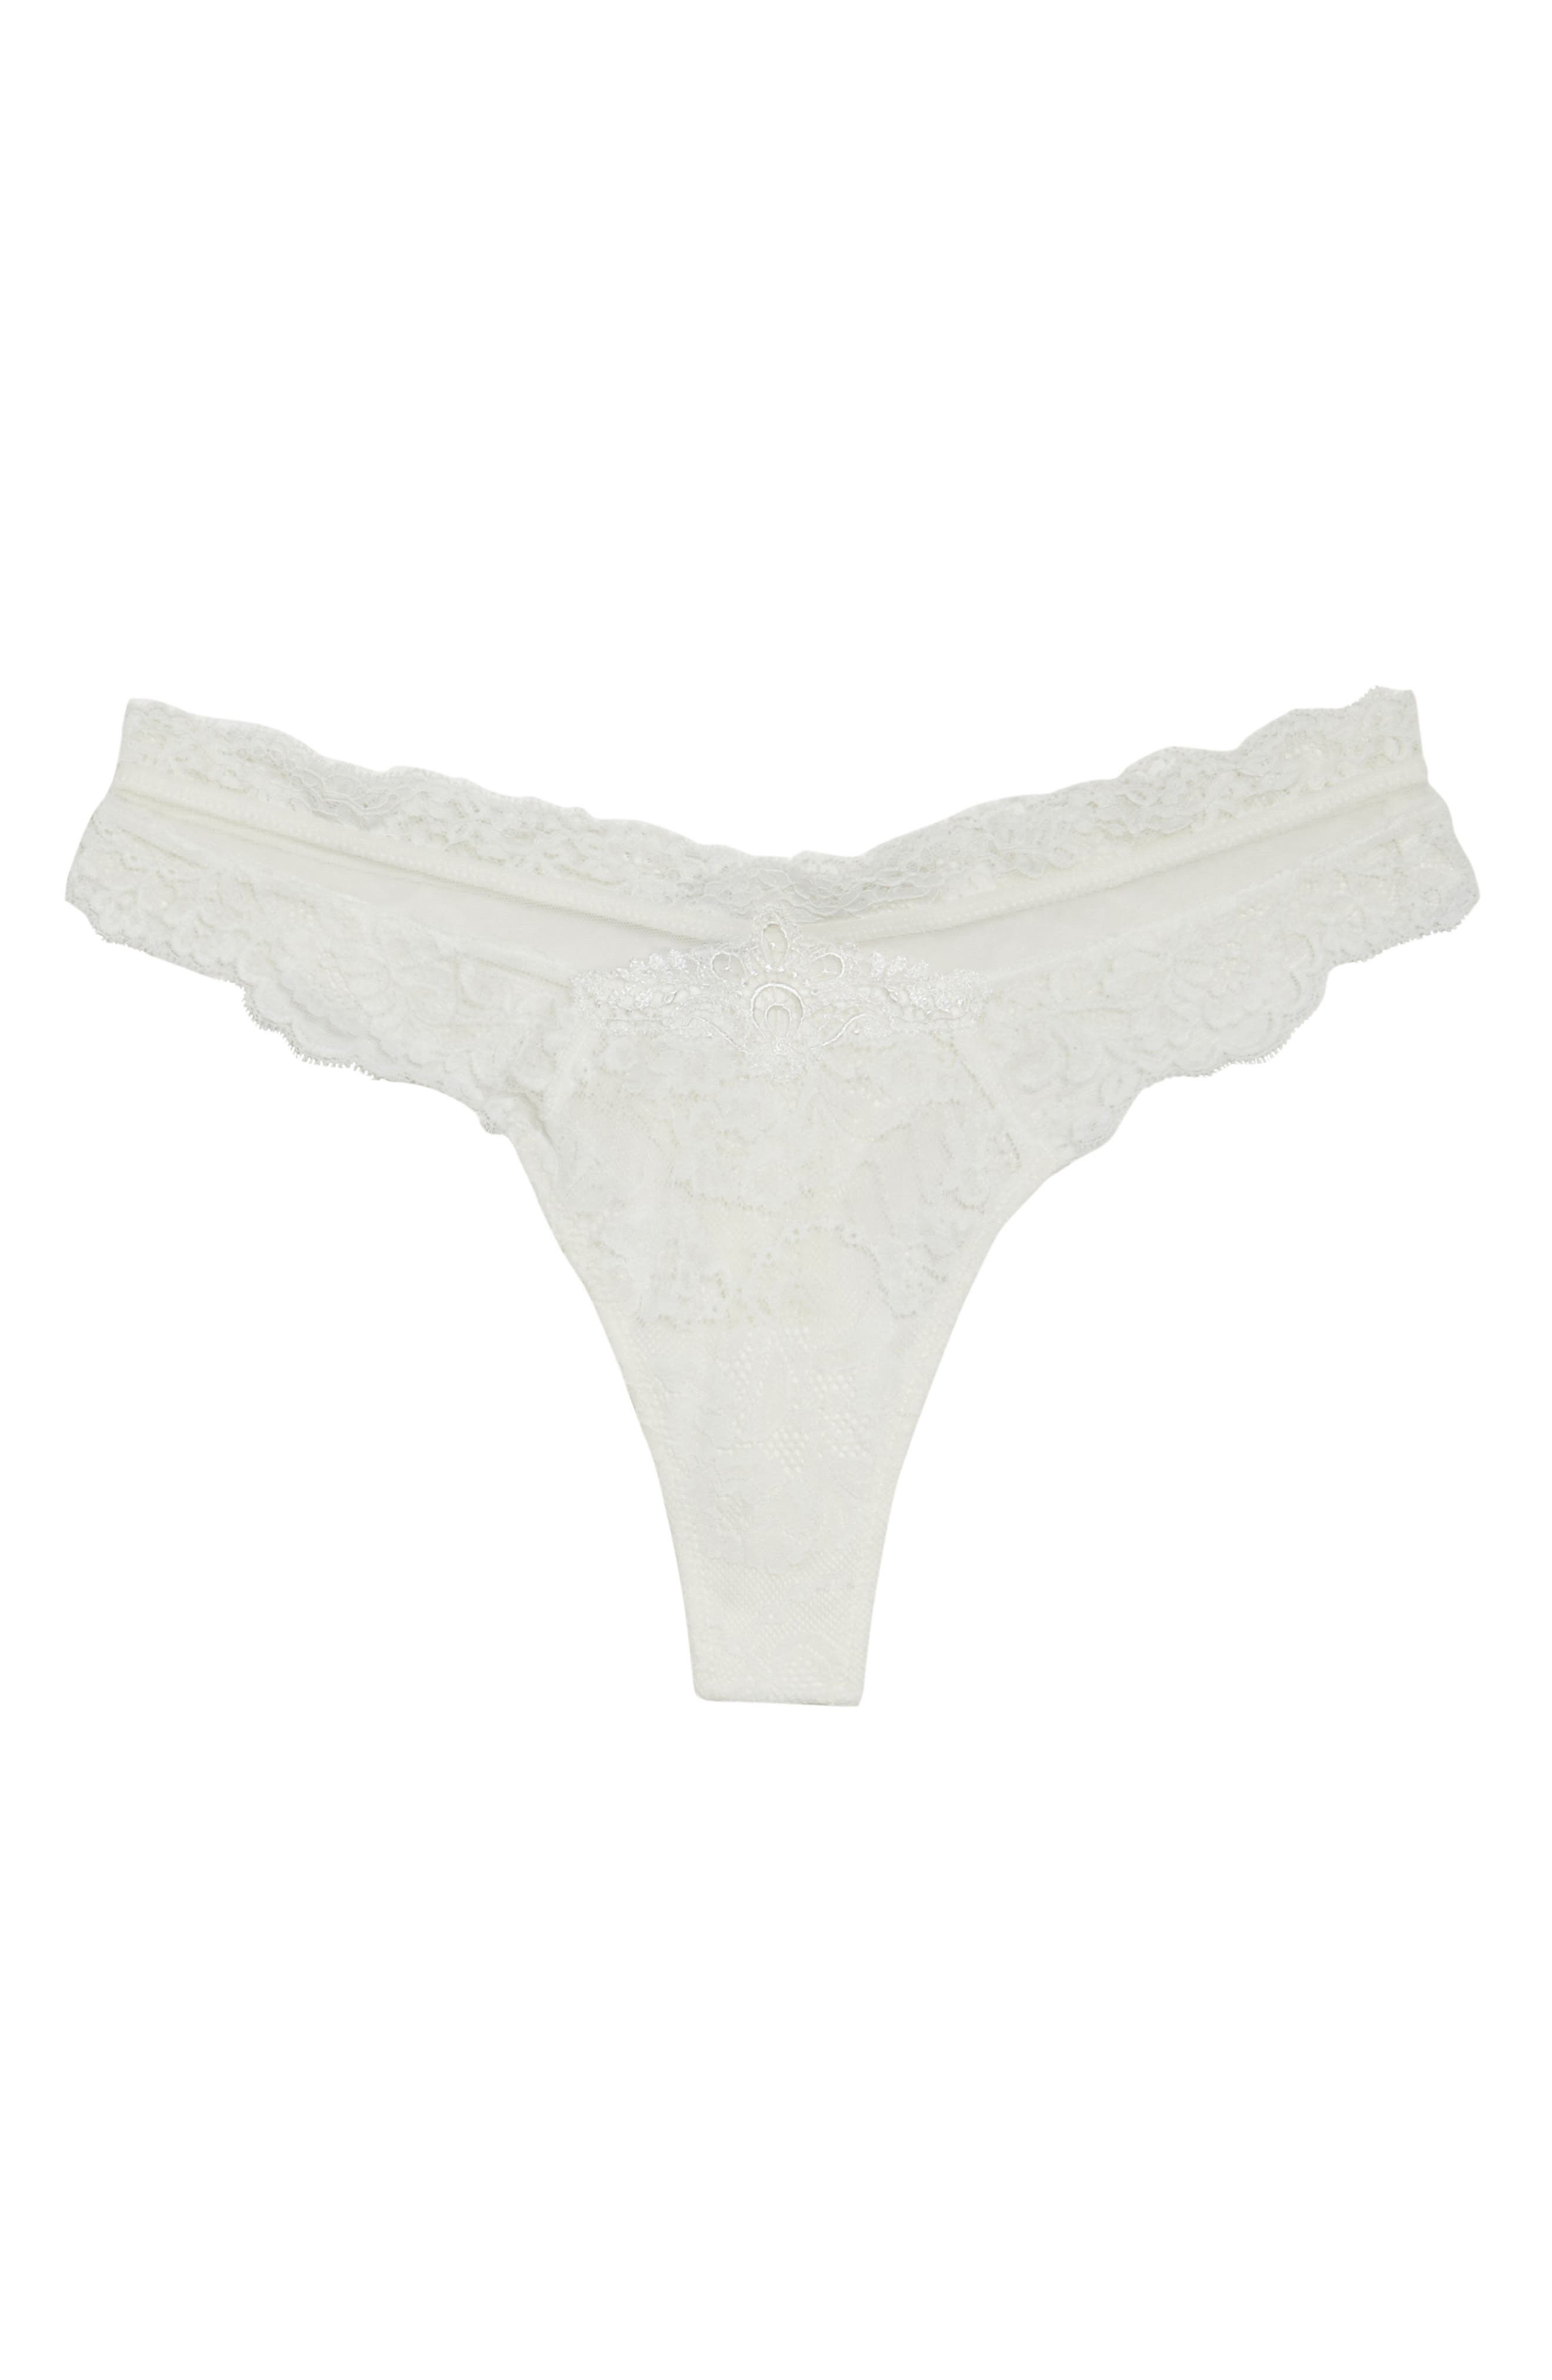 Exception Charme Thong,                             Alternate thumbnail 5, color,                             NACRE